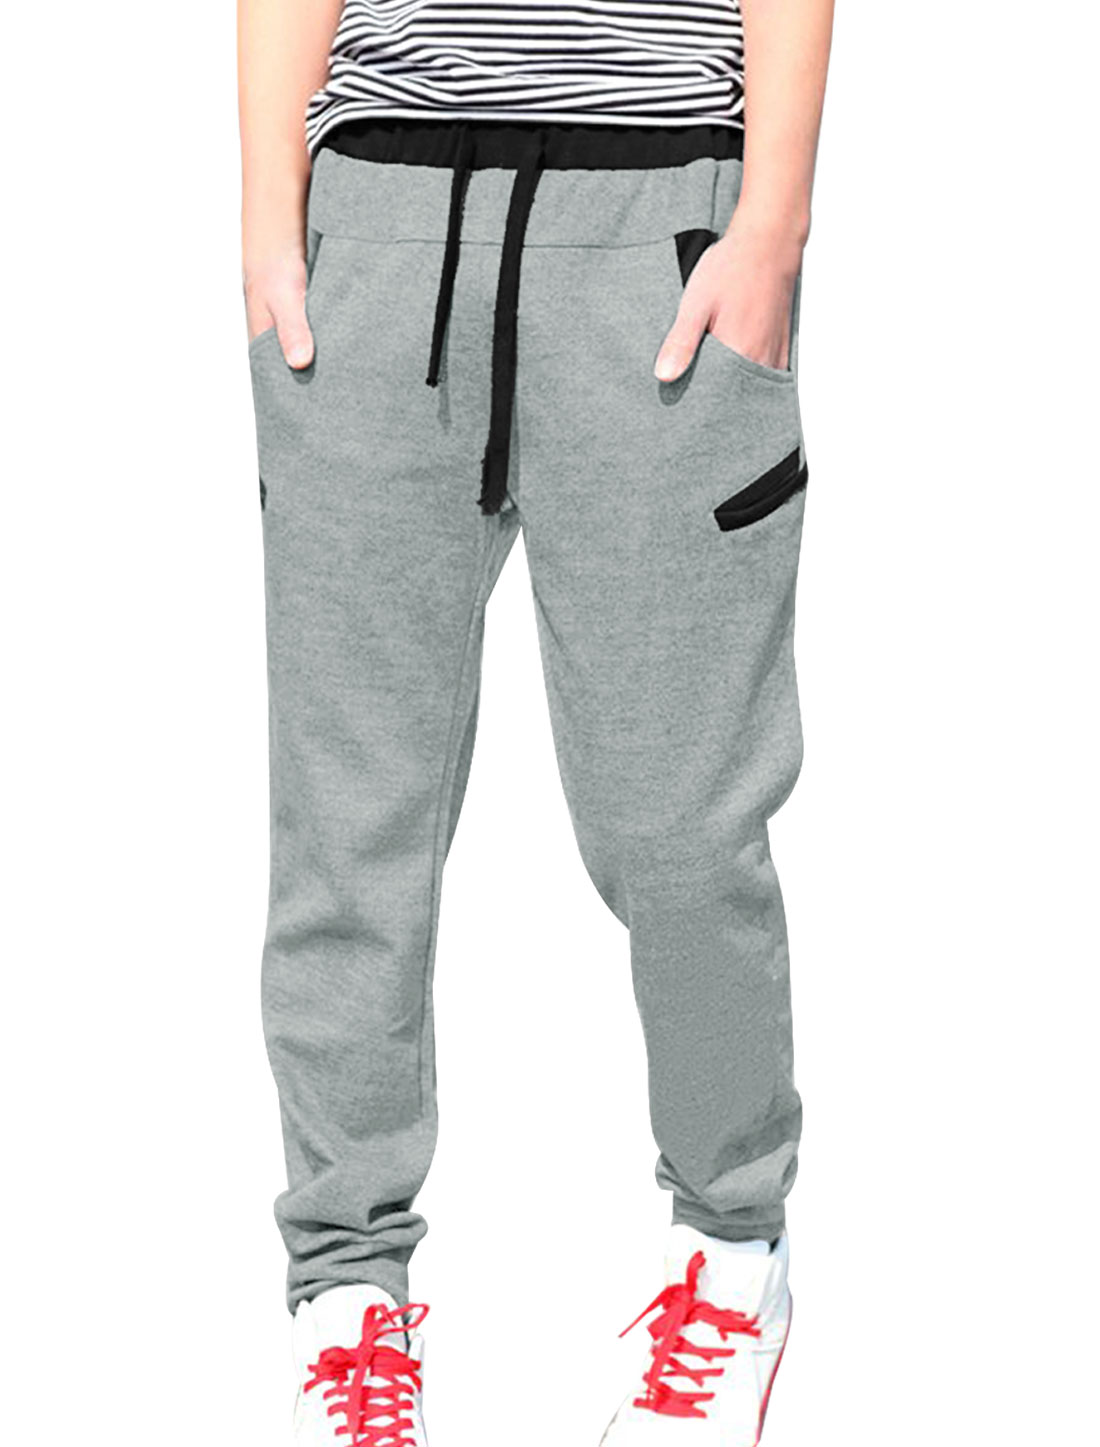 Men New Stylish Elastic Waist Letter Print Back Sweatpants Light Gray W34